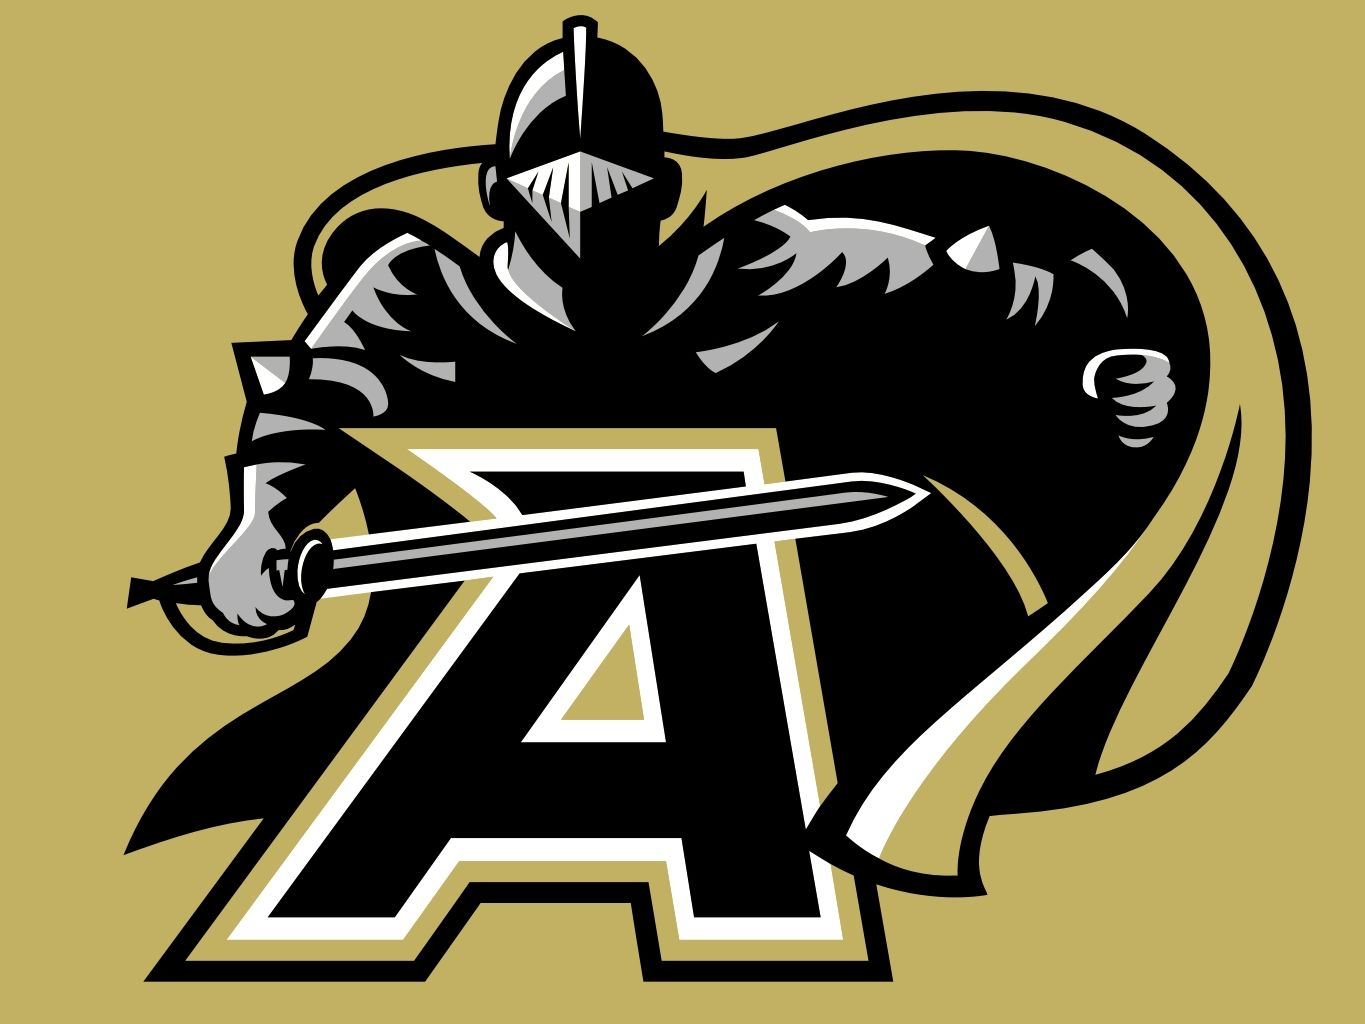 Army black knights is the name of the athletics teams of